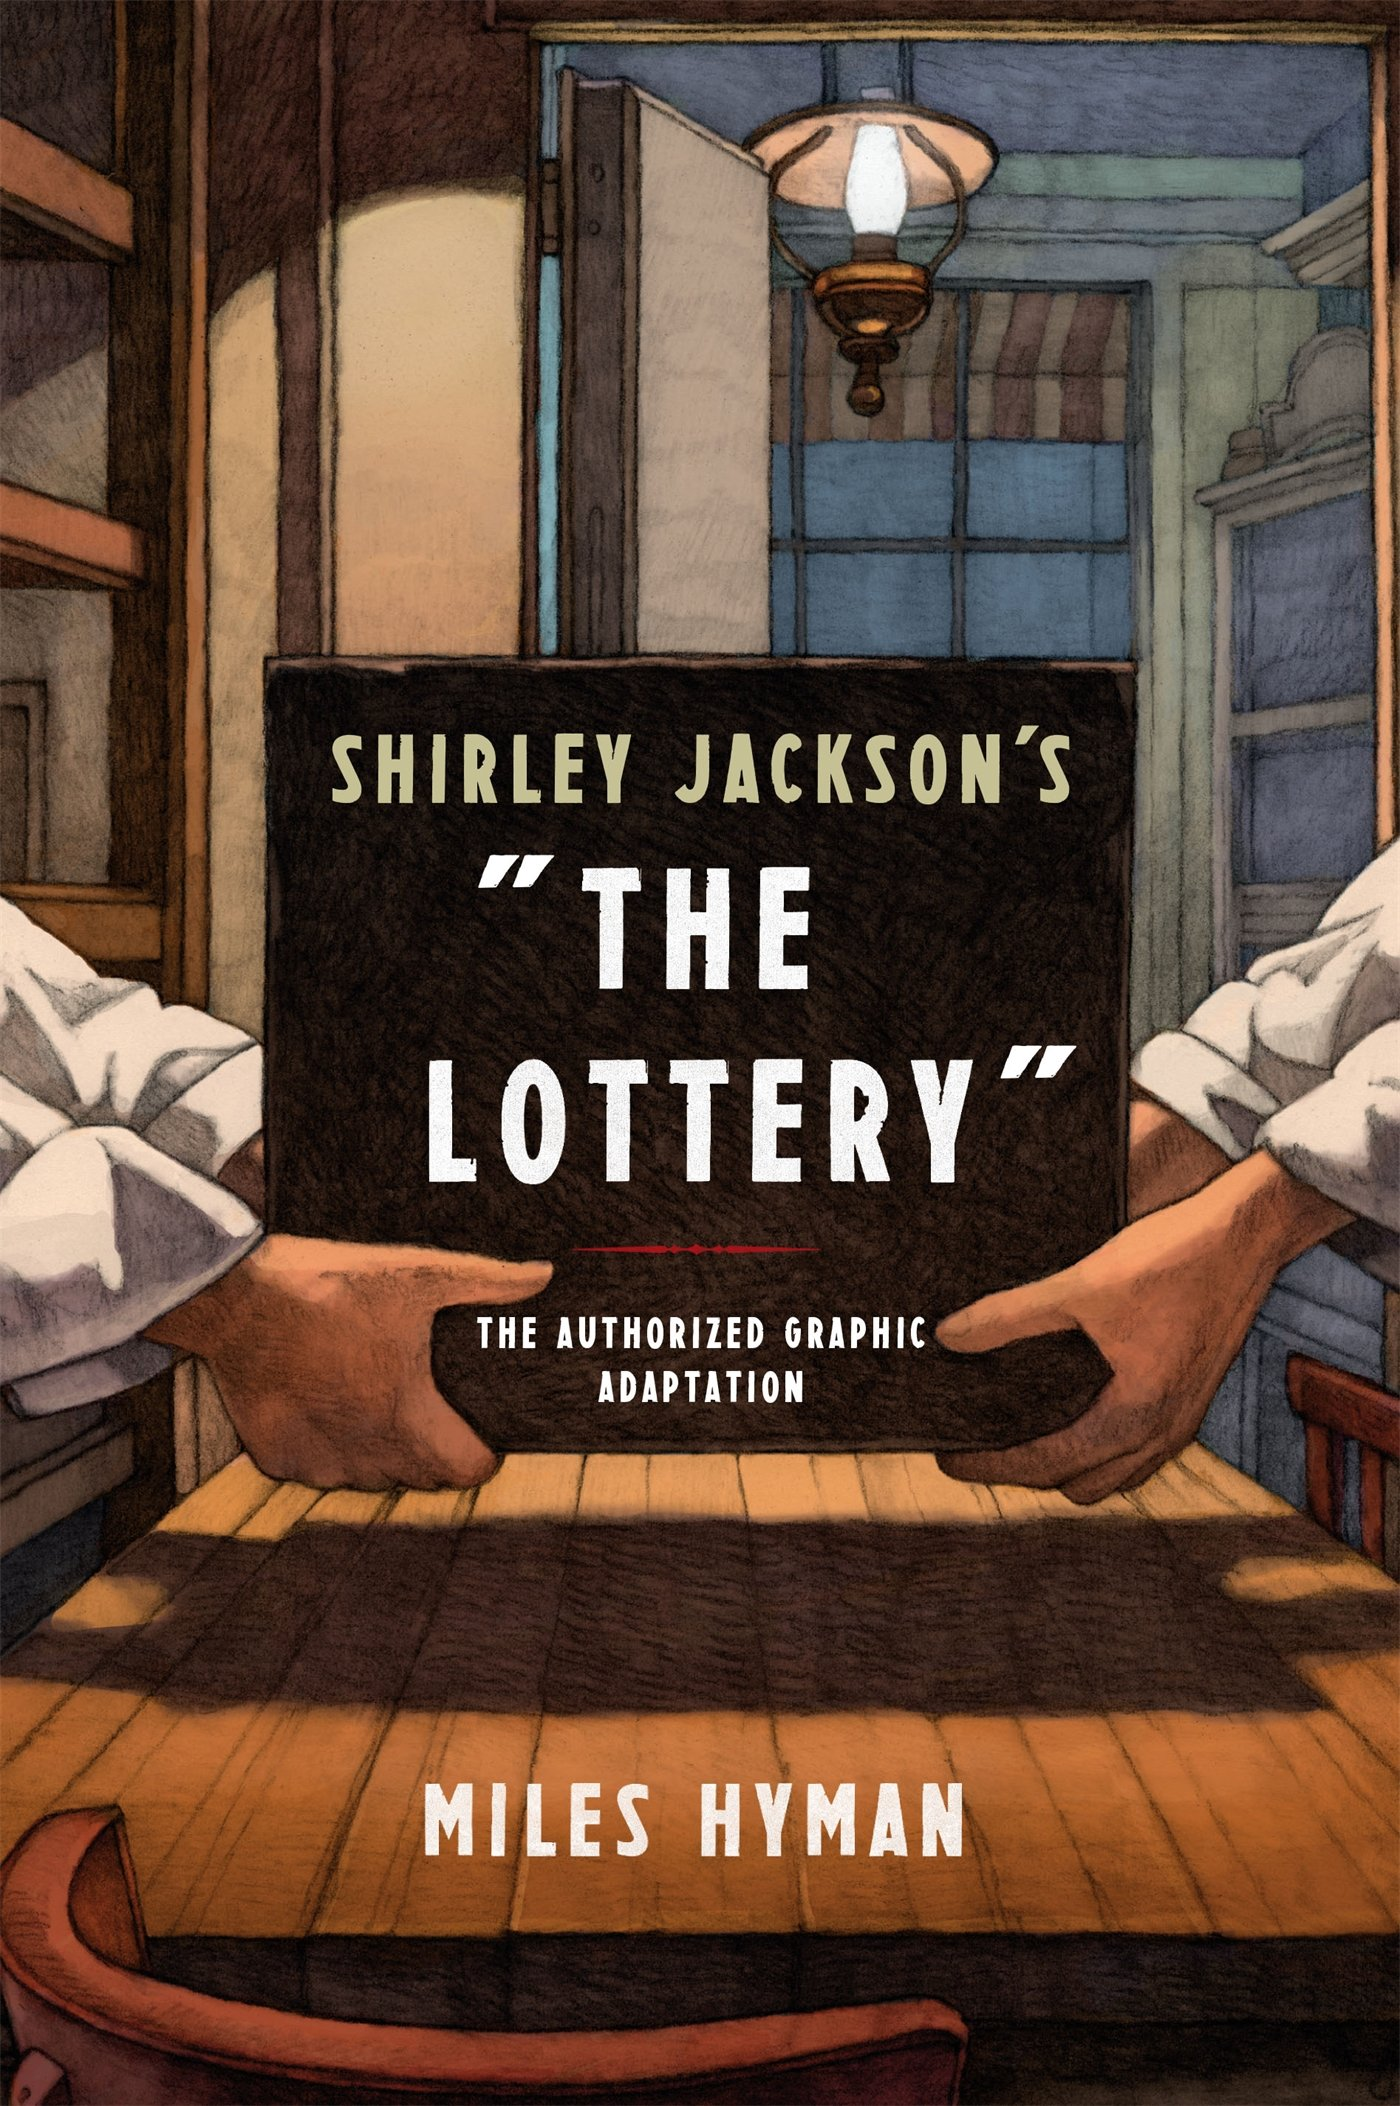 shirley jackson s the lottery the authorized graphic adaptation shirley jackson s the lottery the authorized graphic adaptation miles hyman 9780809066506 com books